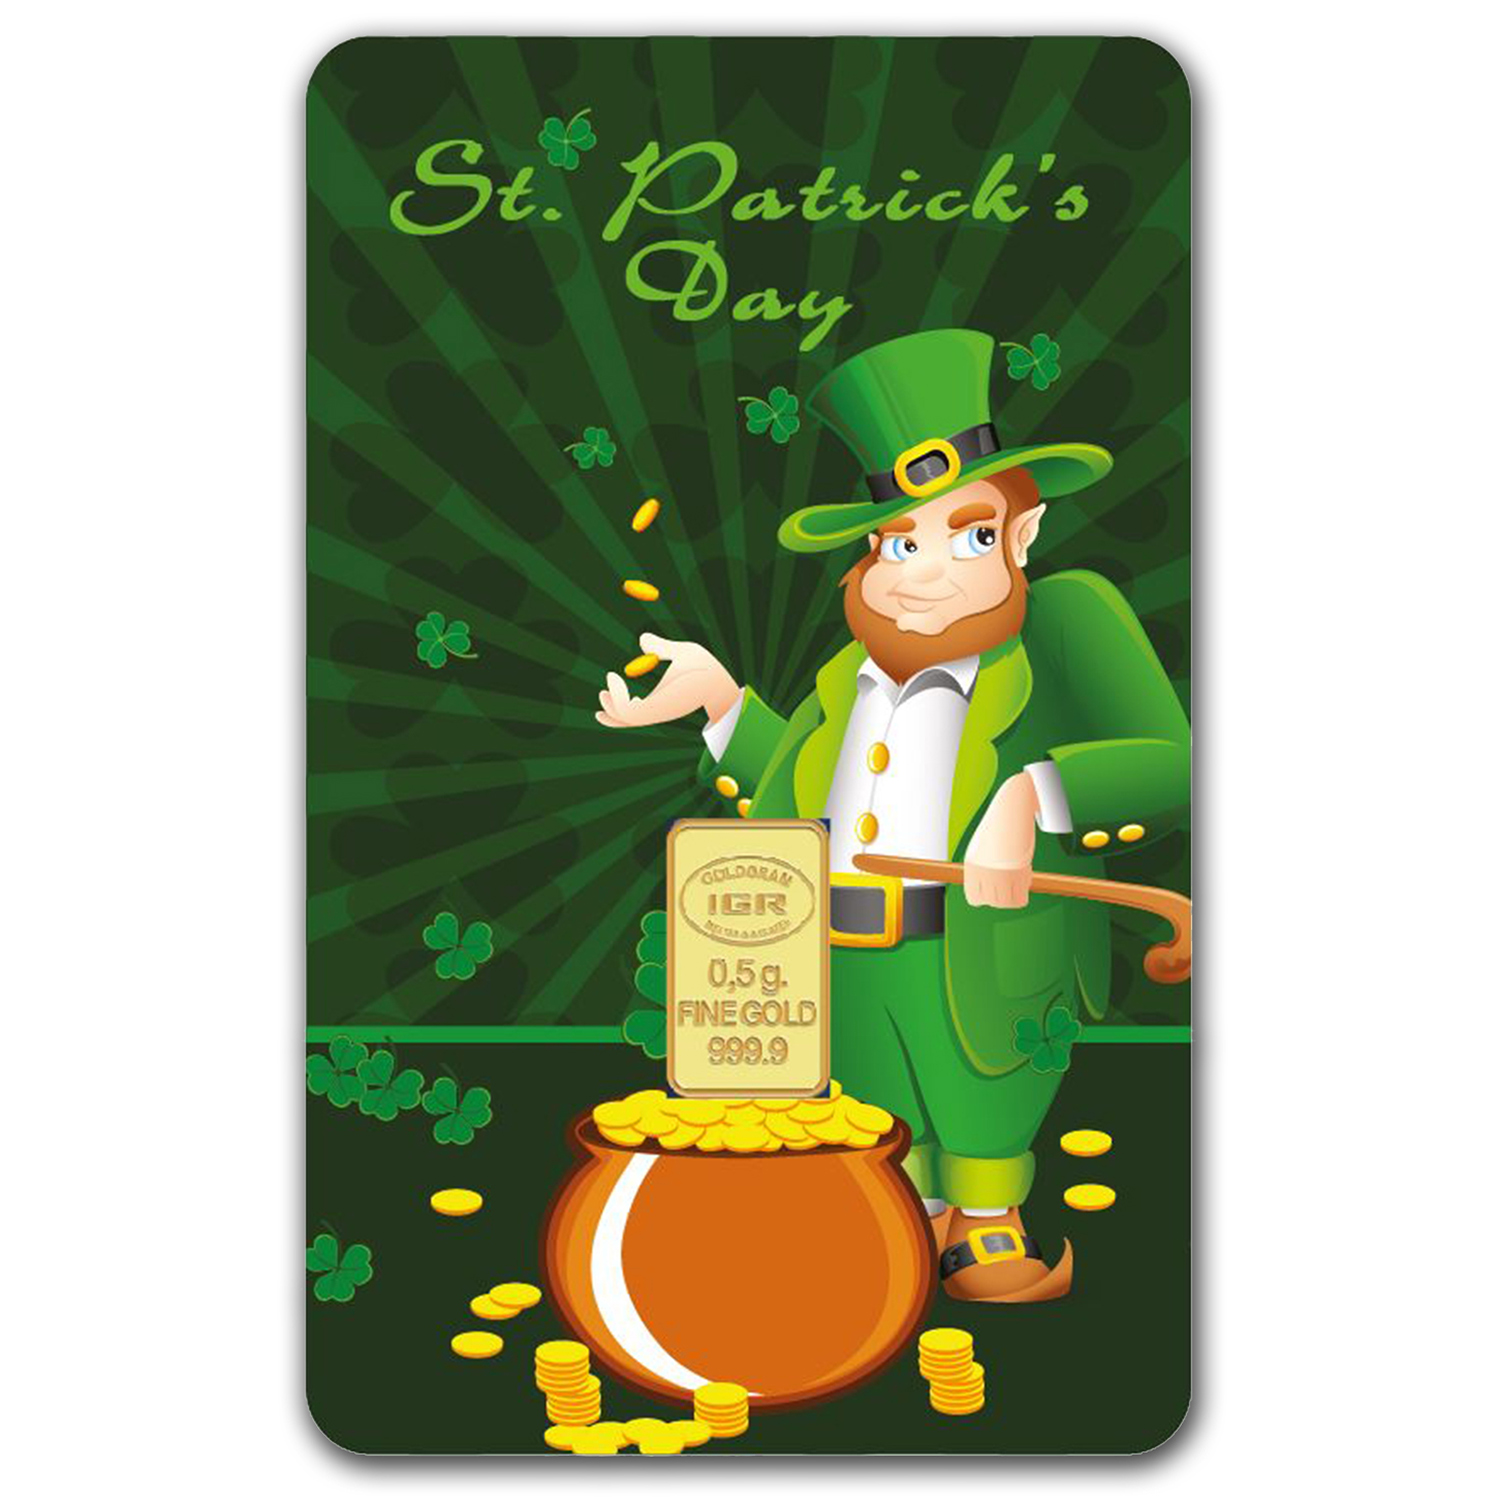 1/2 gram Gold Bar - Istanbul Gold Refinery (St. Patrick's Day)